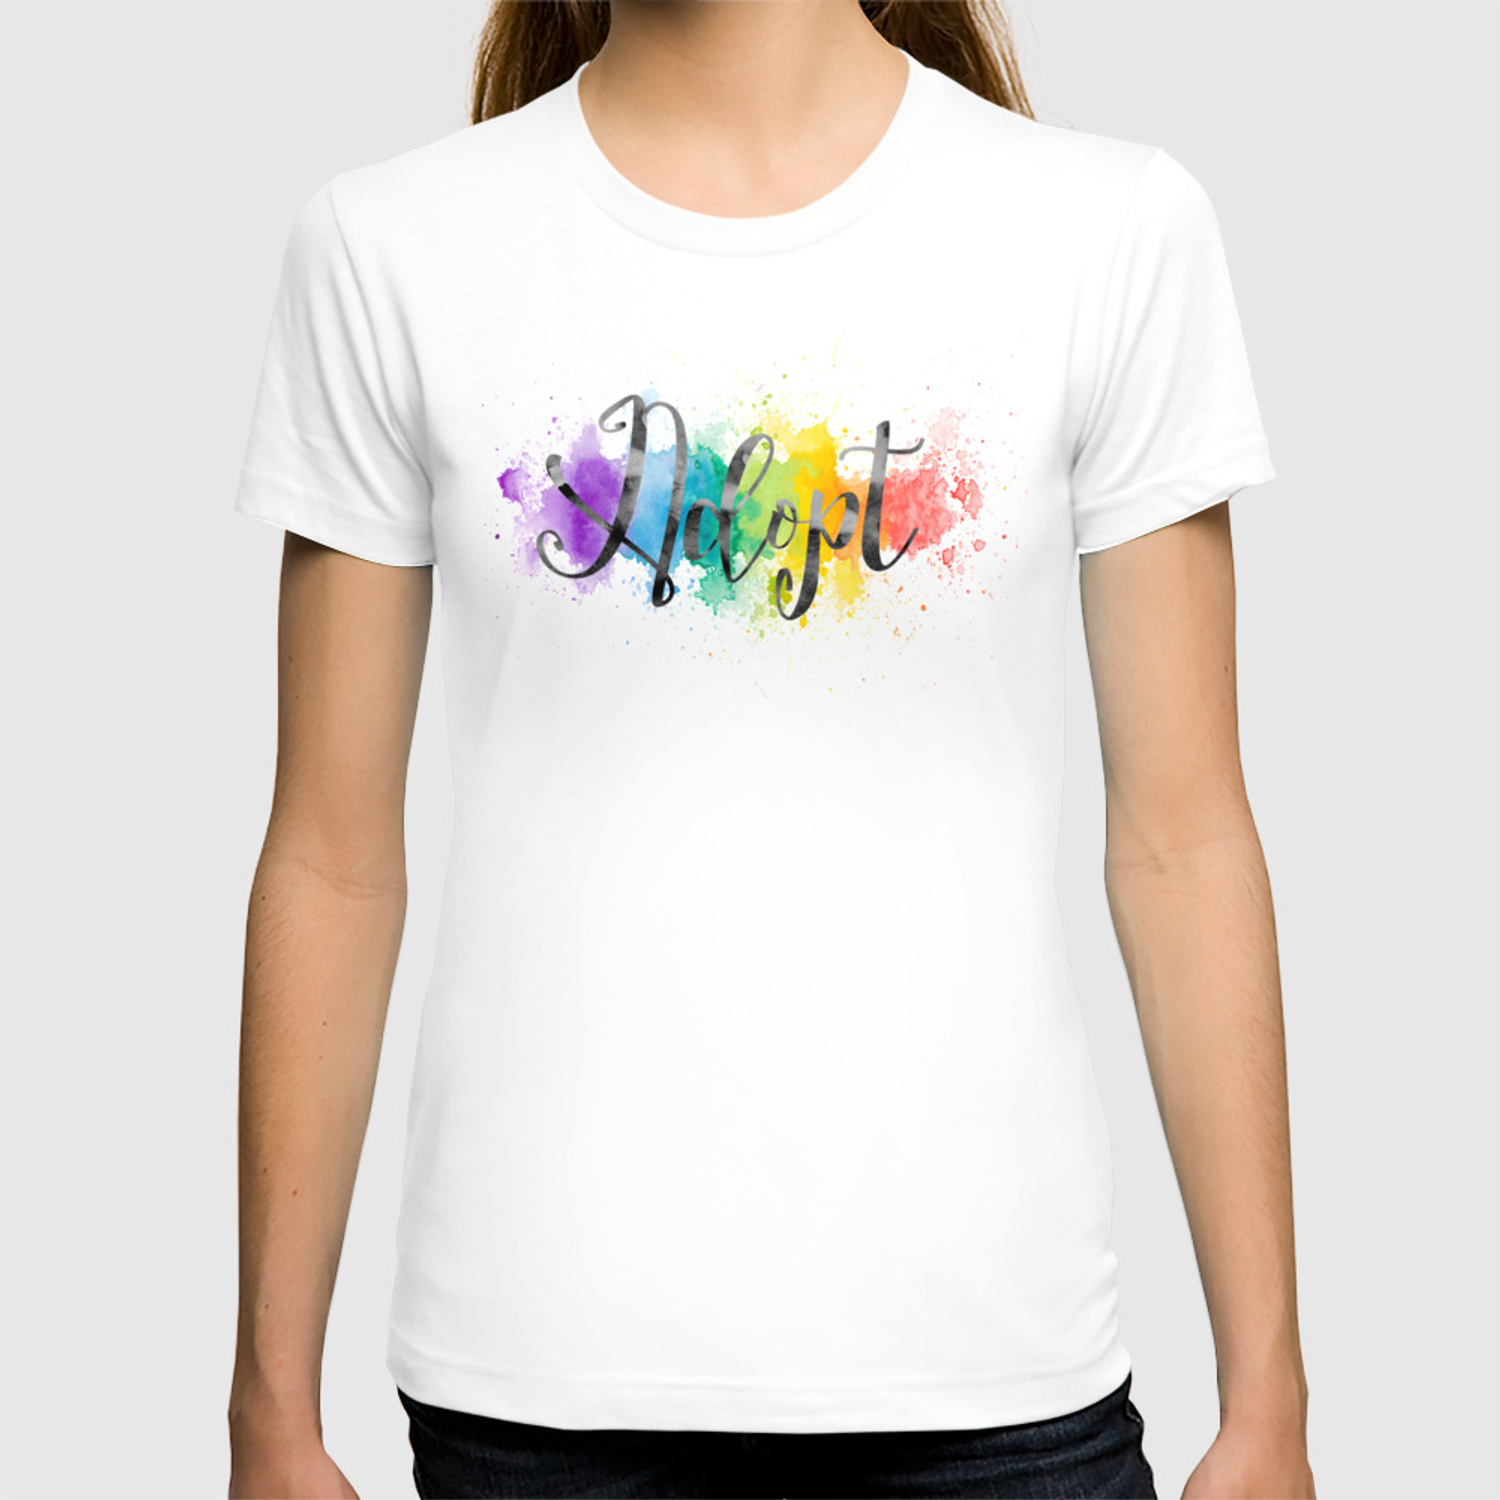 4aab9a7f1ebfb Adopt | Our Rainbow Baby T-shirt